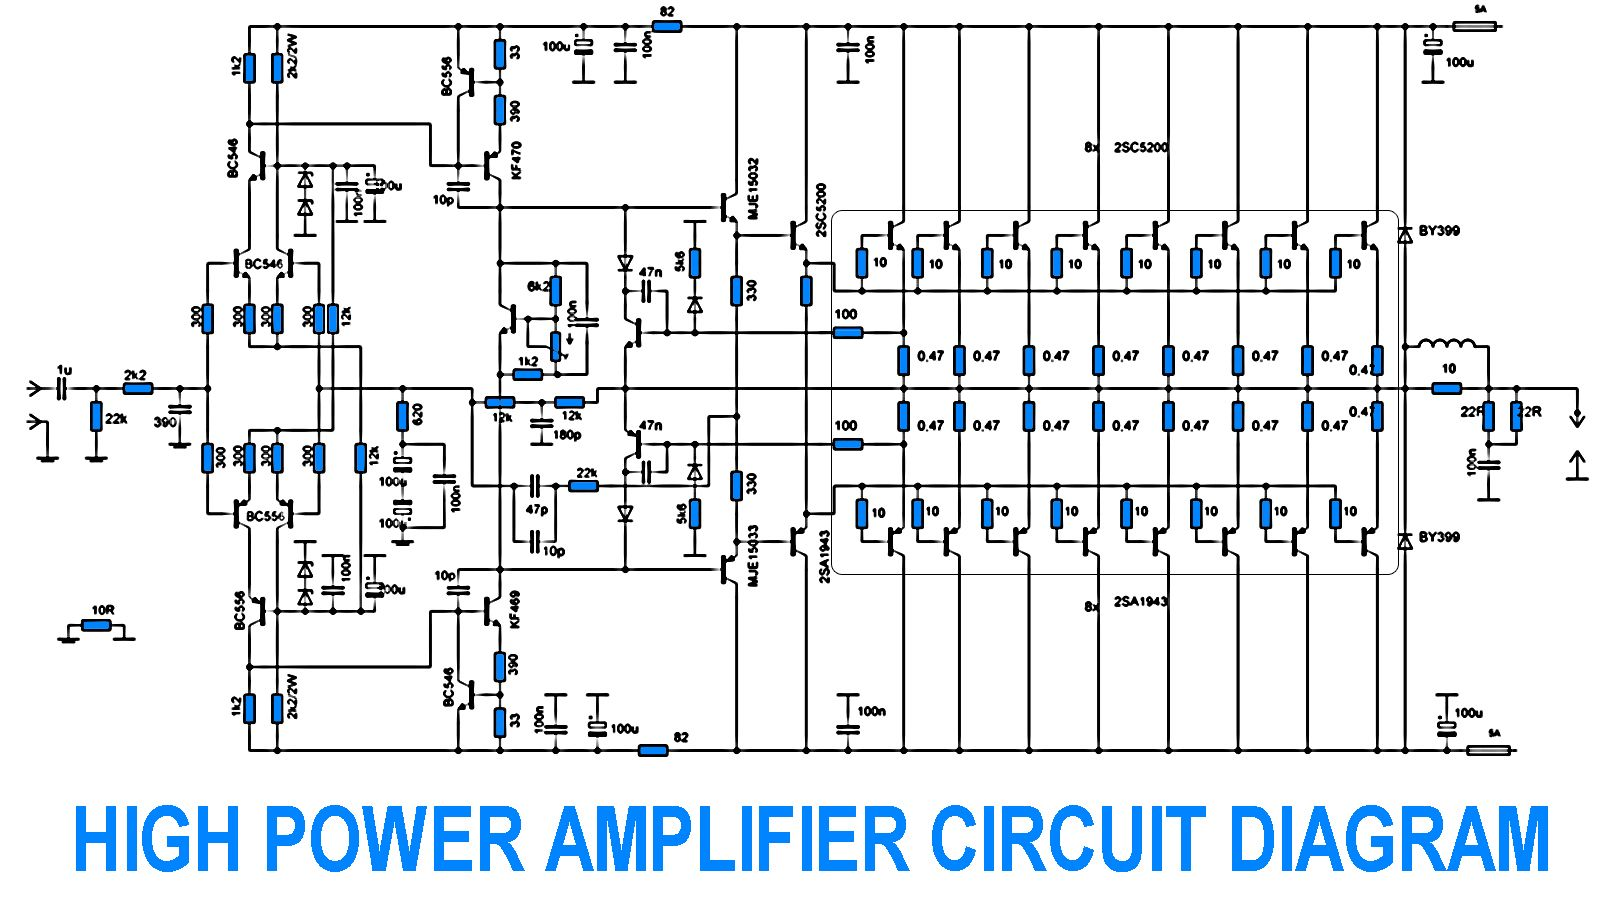 1000 Watts Amplifier Circuit Diagram - Circuit Schematic Electronics Power  Amplifier With - 1000 Watts Amplifier